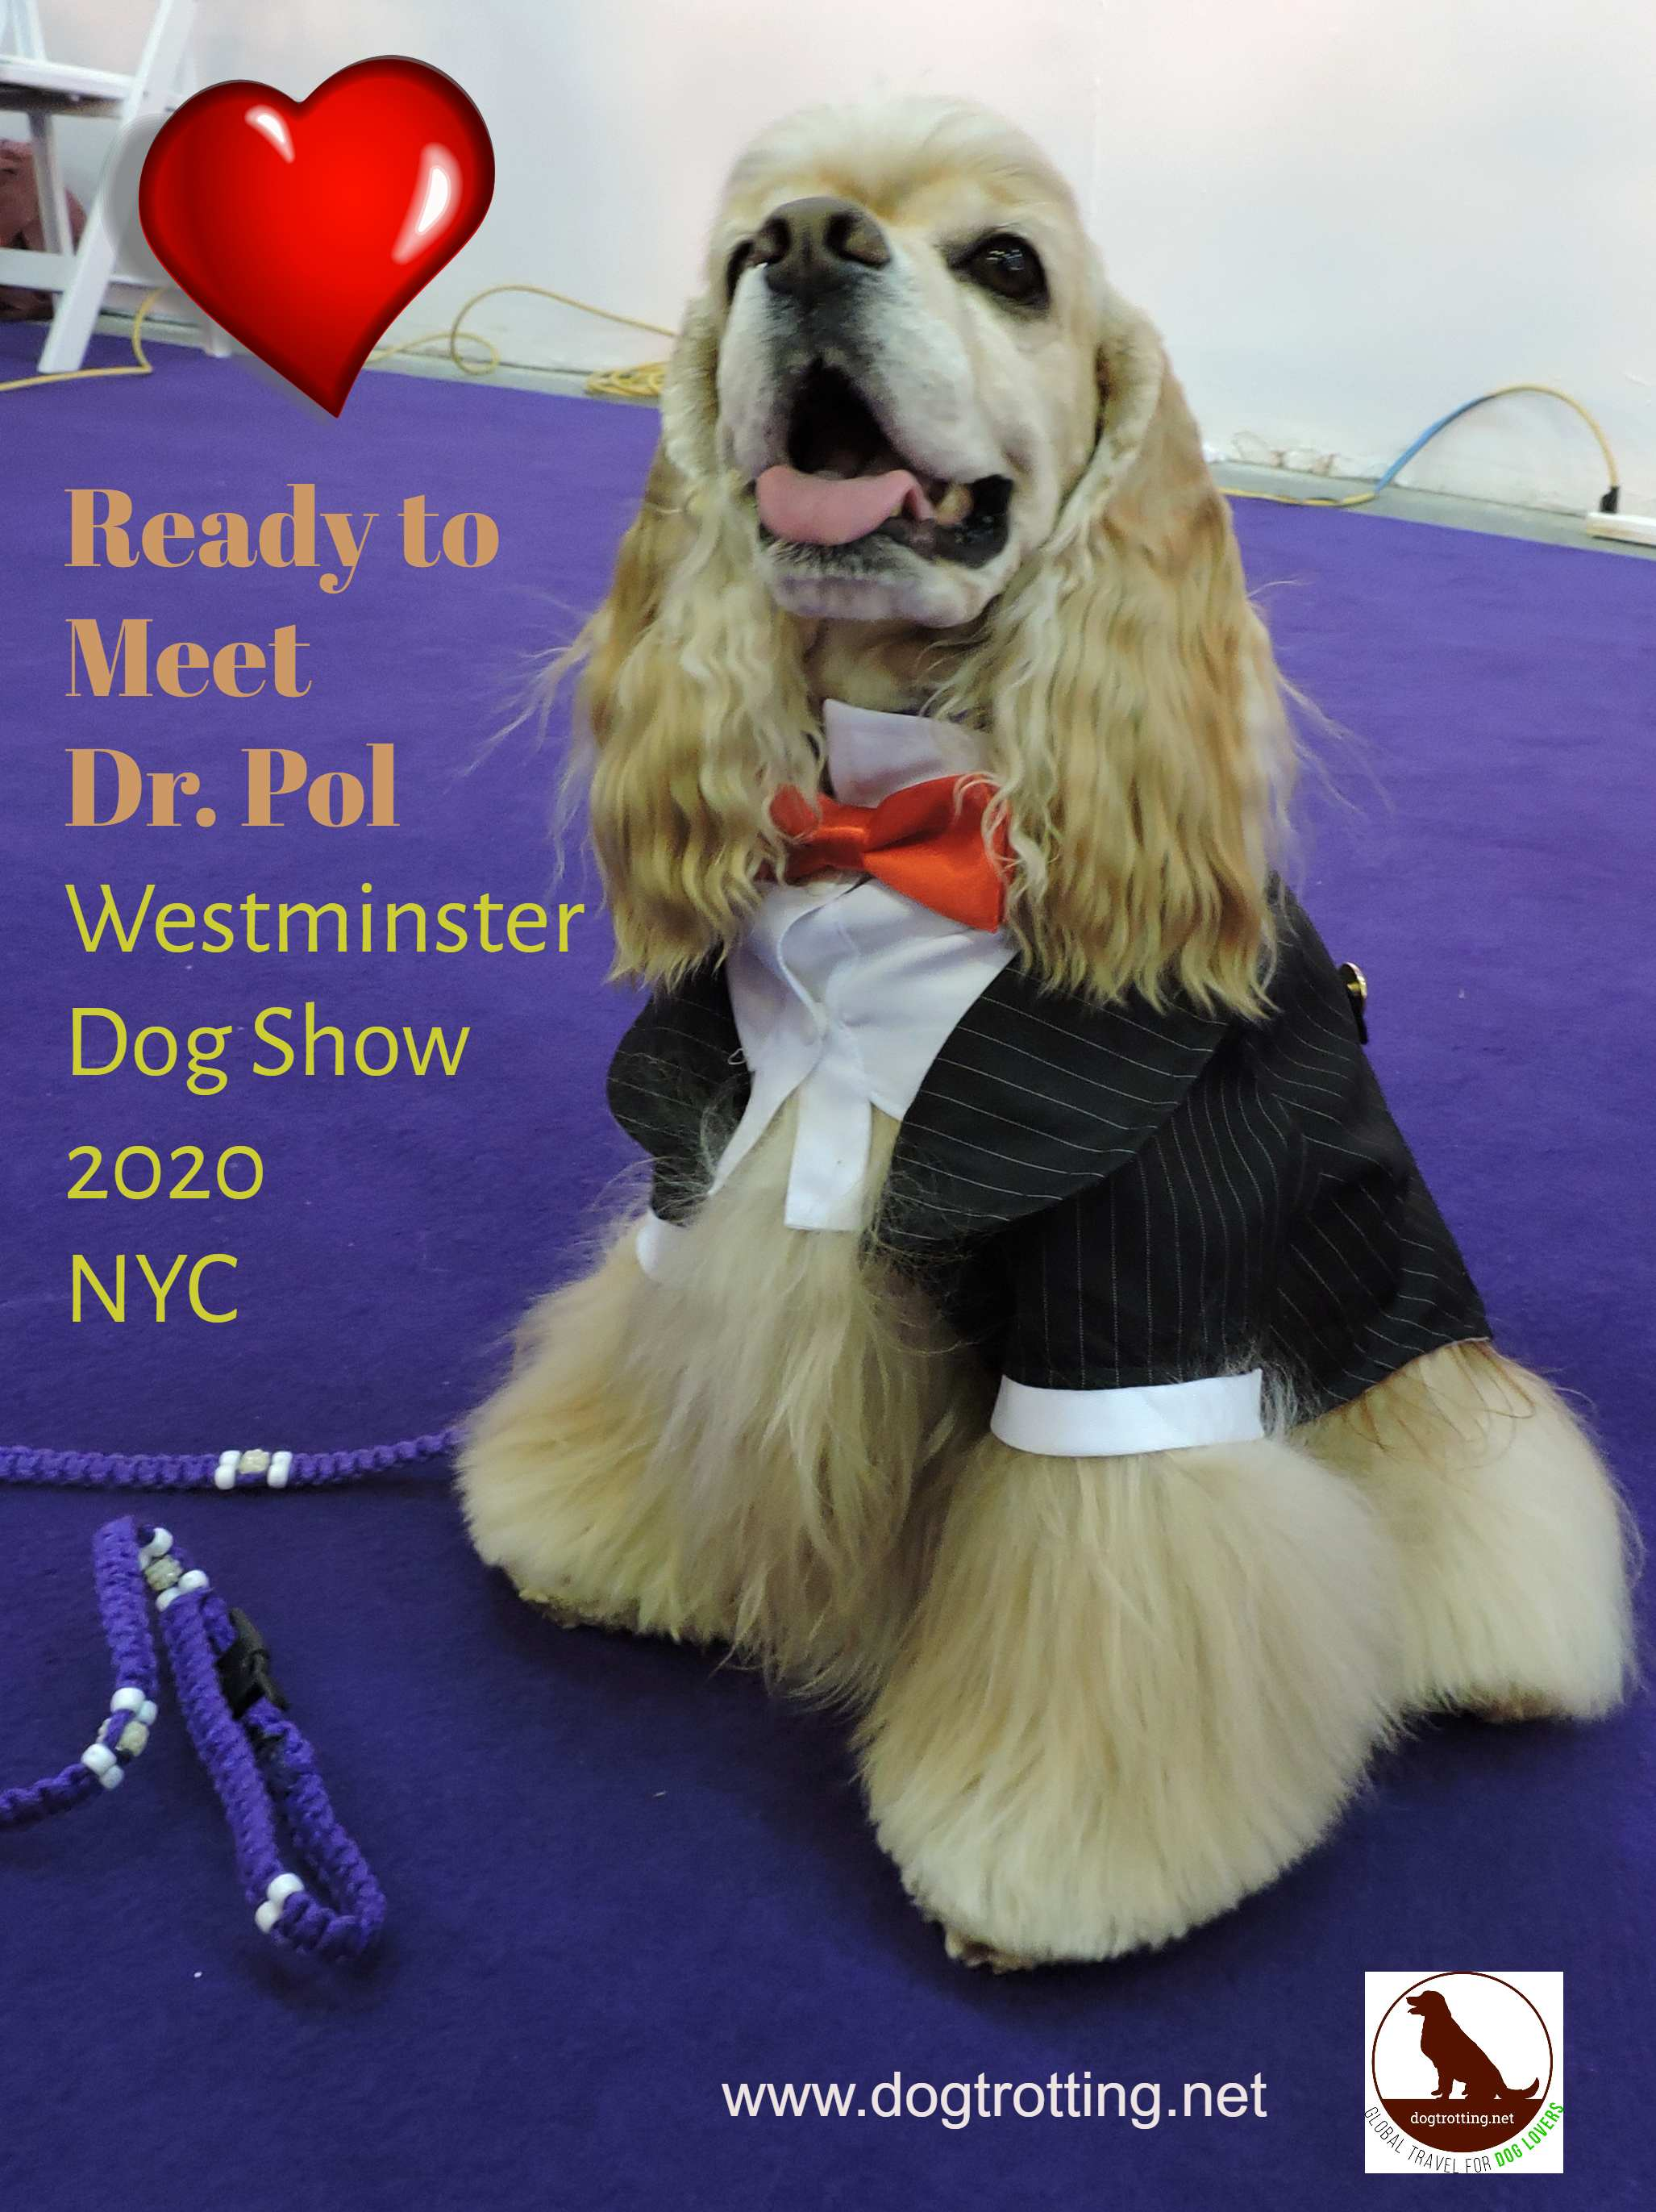 Travel NYC: Meet Dr. Pol at Westminster 2020